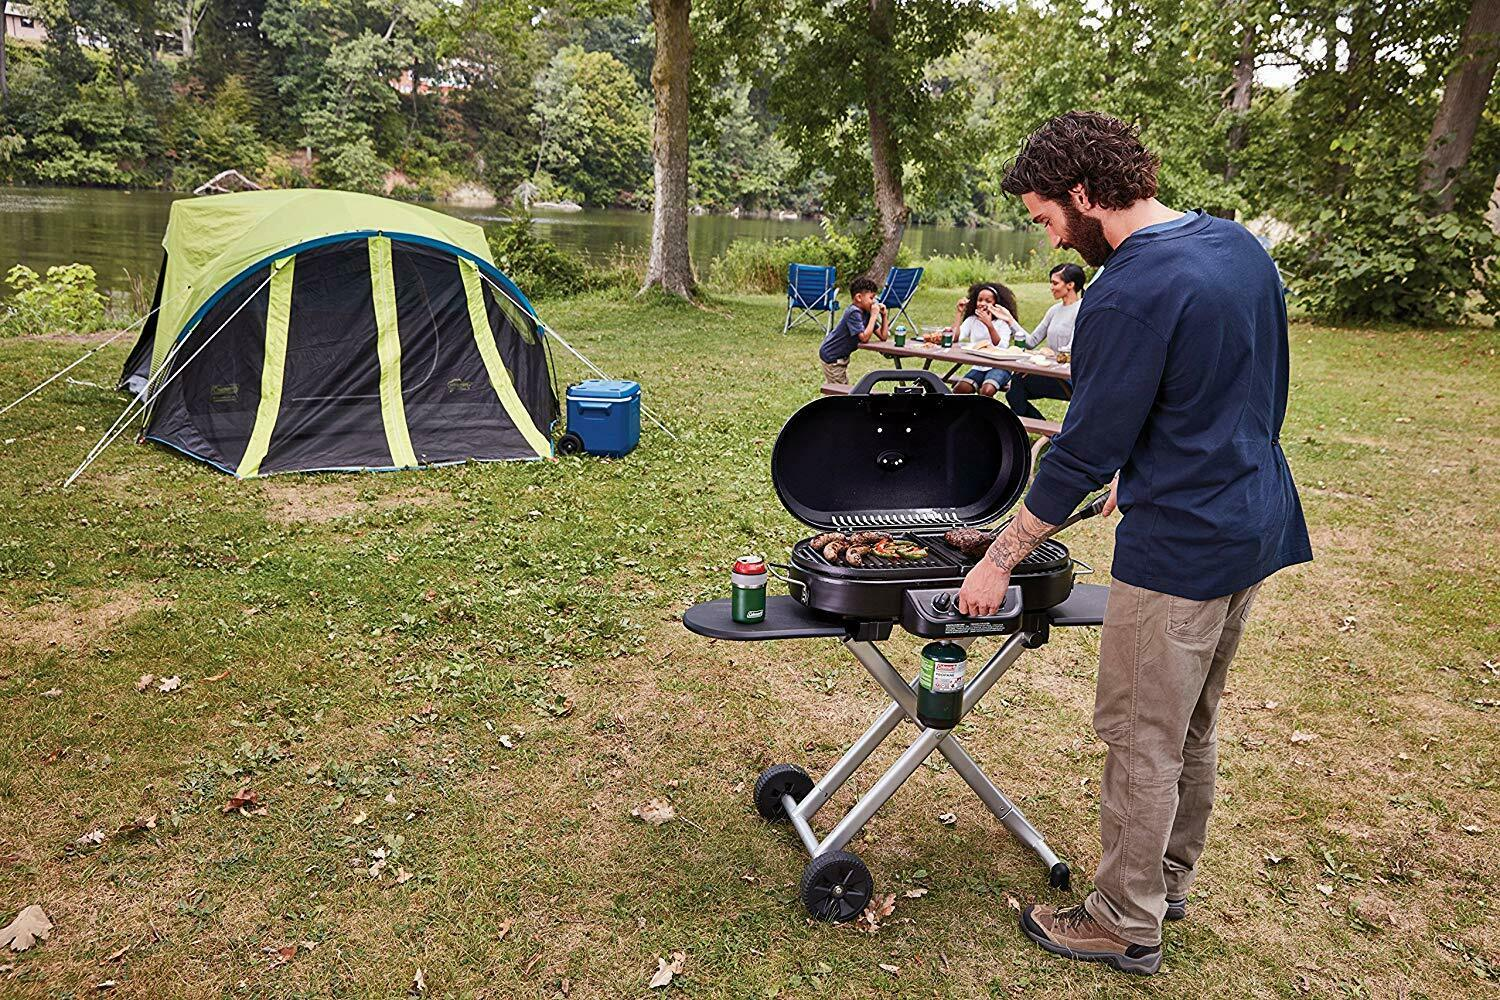 Coleman RoadTrip 285 Portable Stand-Up Propane Grill Camping Wandern 3DAYSHIP